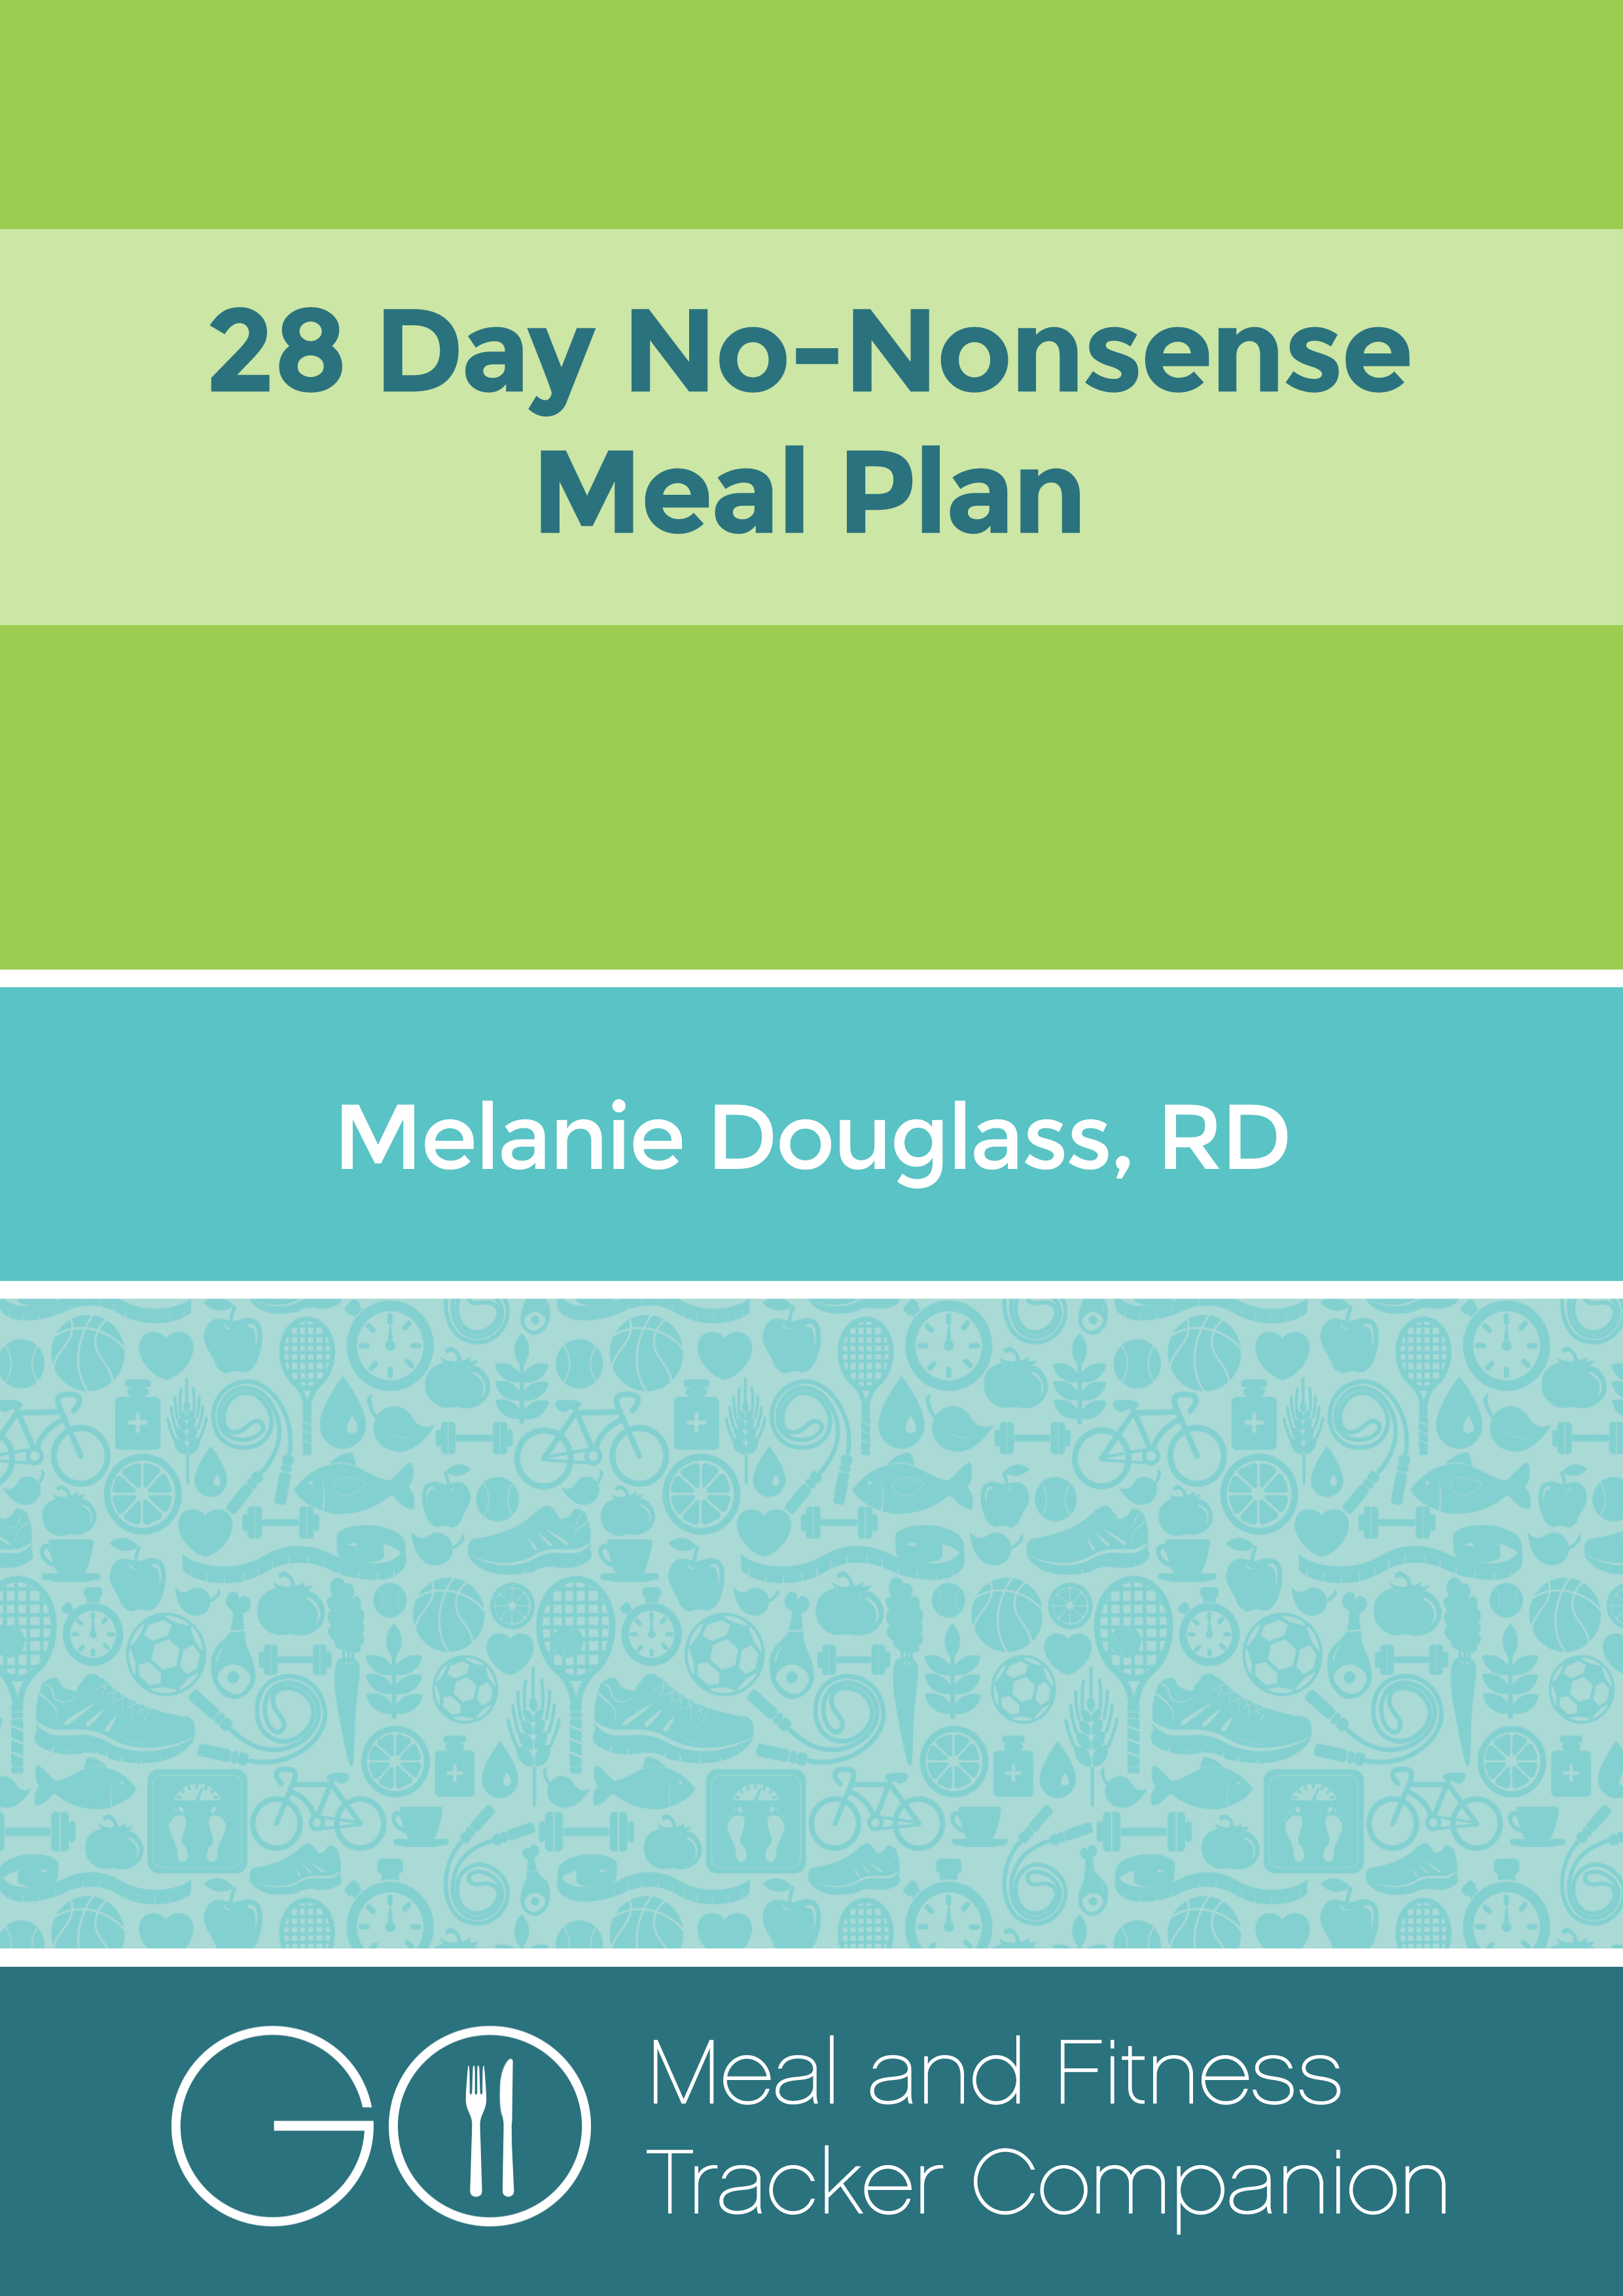 Go meal plan cover